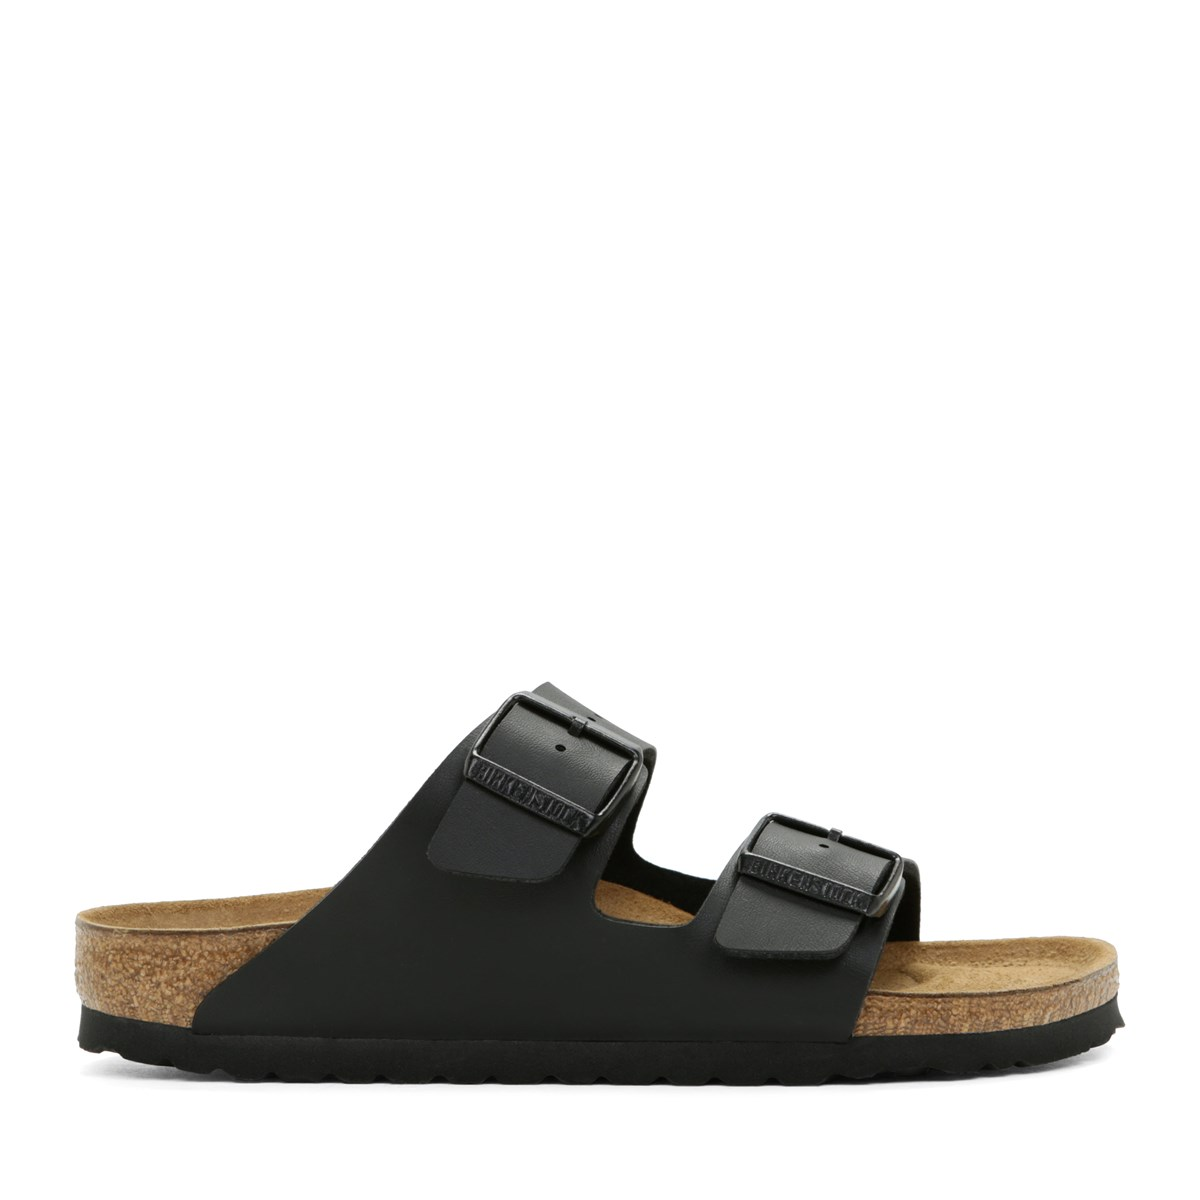 Women's Arizona Sandal in Black